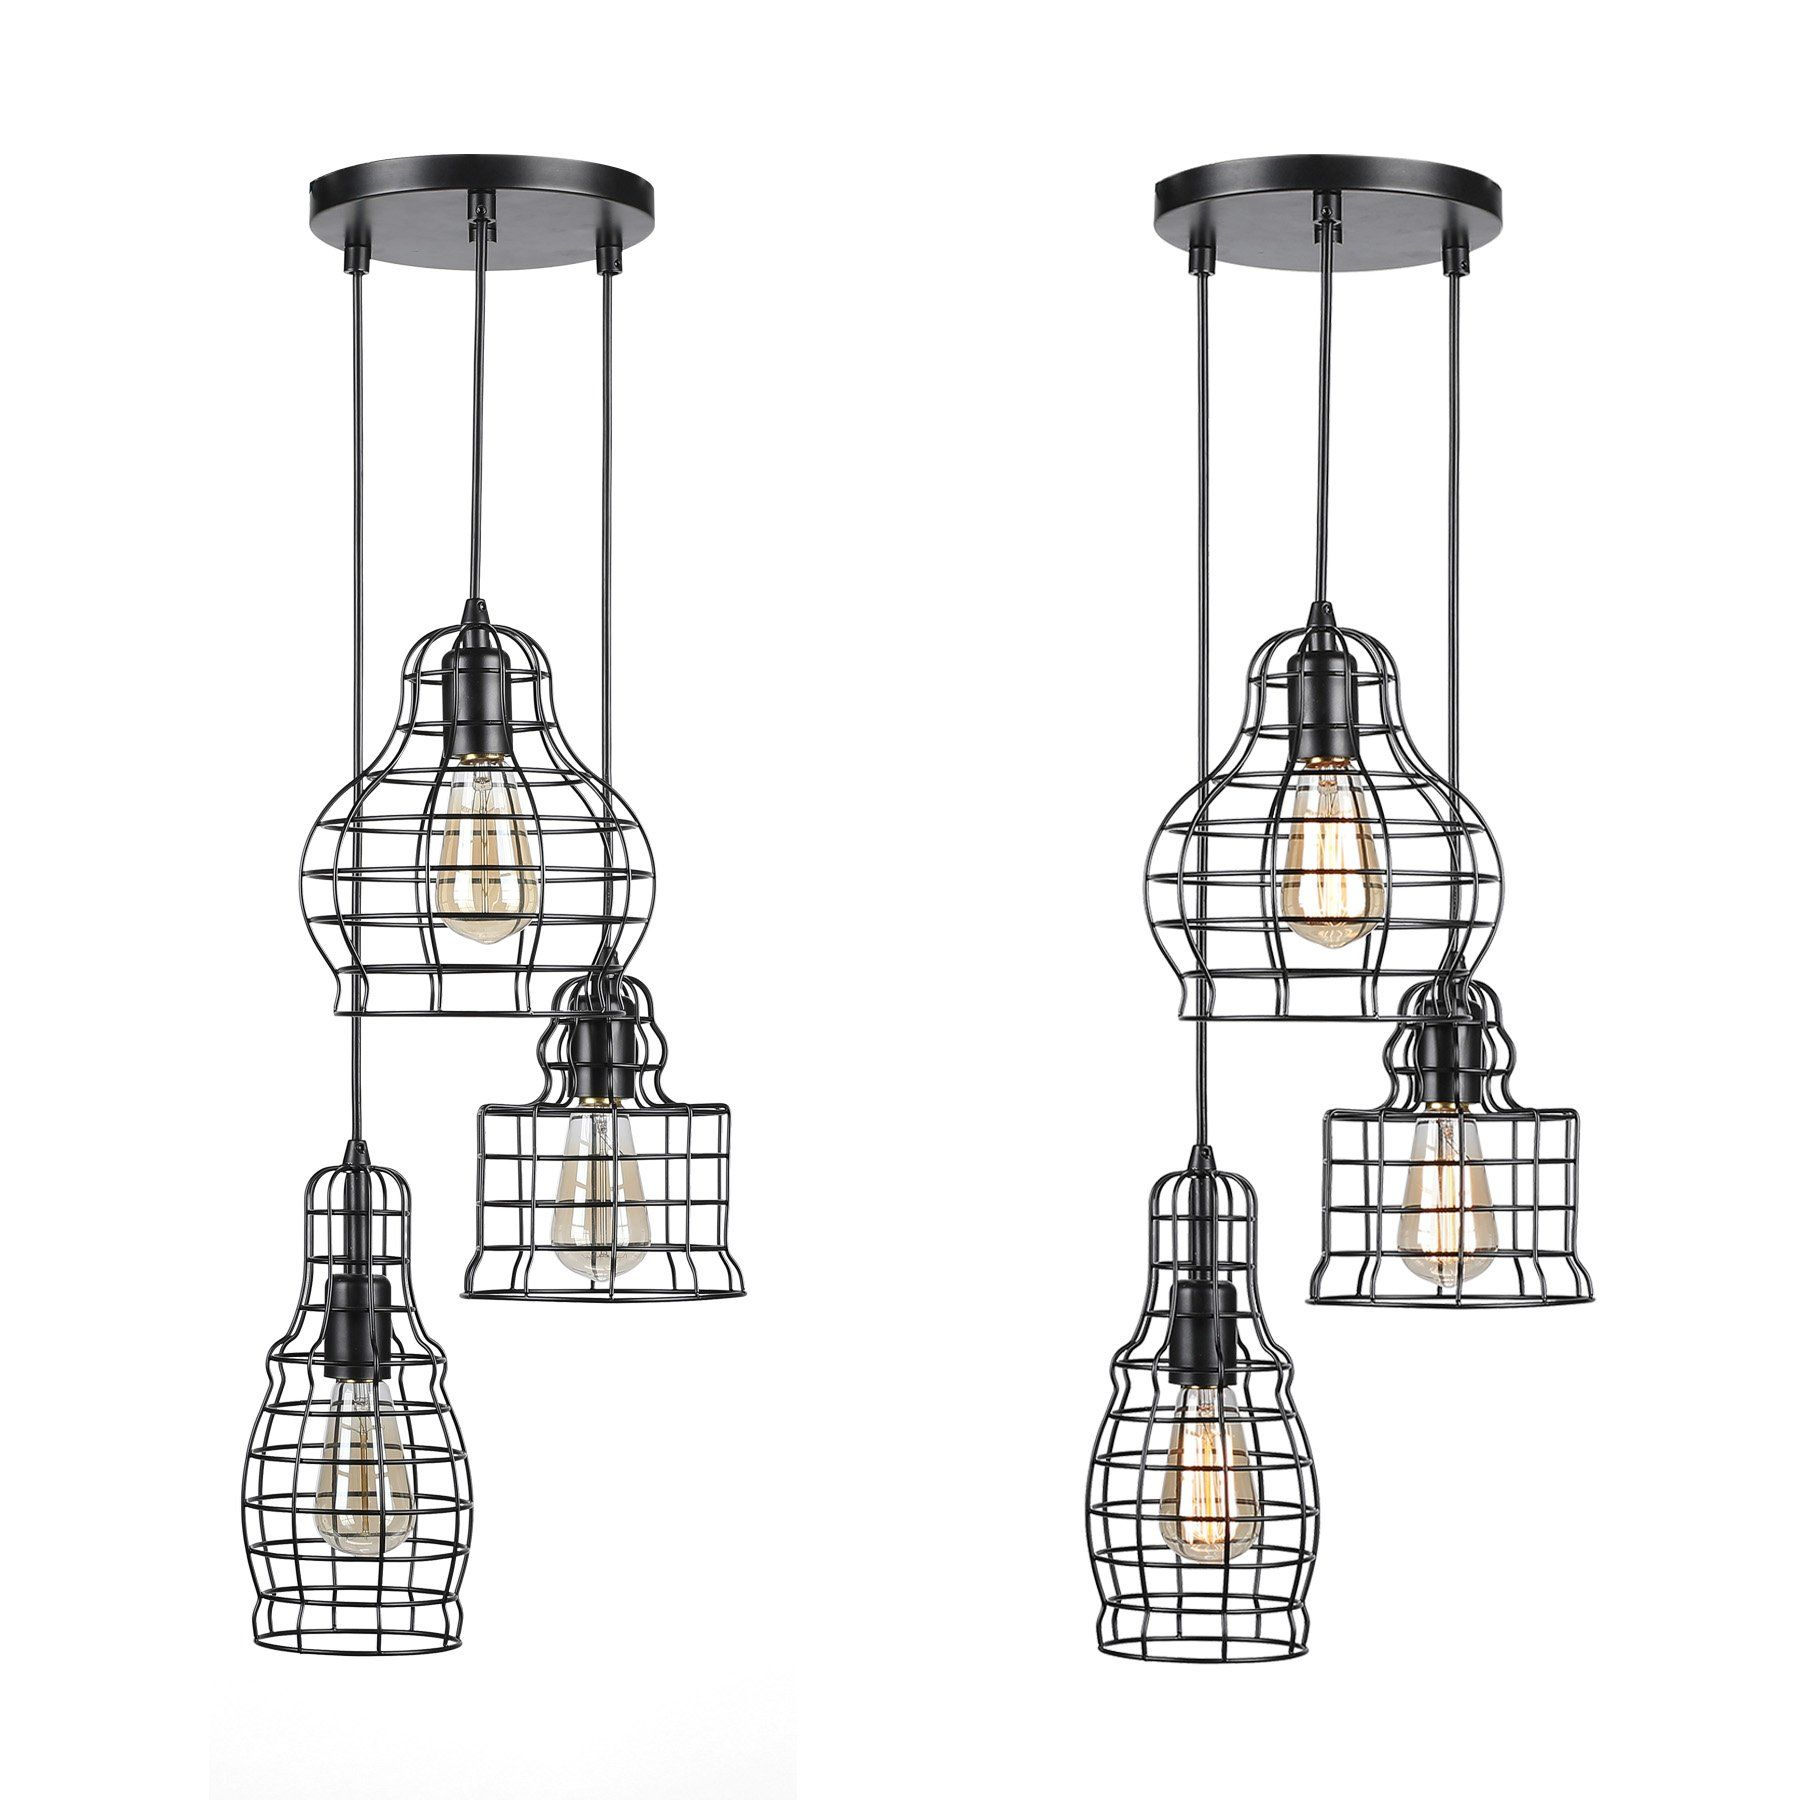 Coz 3light Wire Cage Cluster Pendant Chandelier In Antique Bronze Finish 3 Metal Squirrel Cages Hangin Ceiling Lights Pendant Chandelier Ceiling Light Fixtures